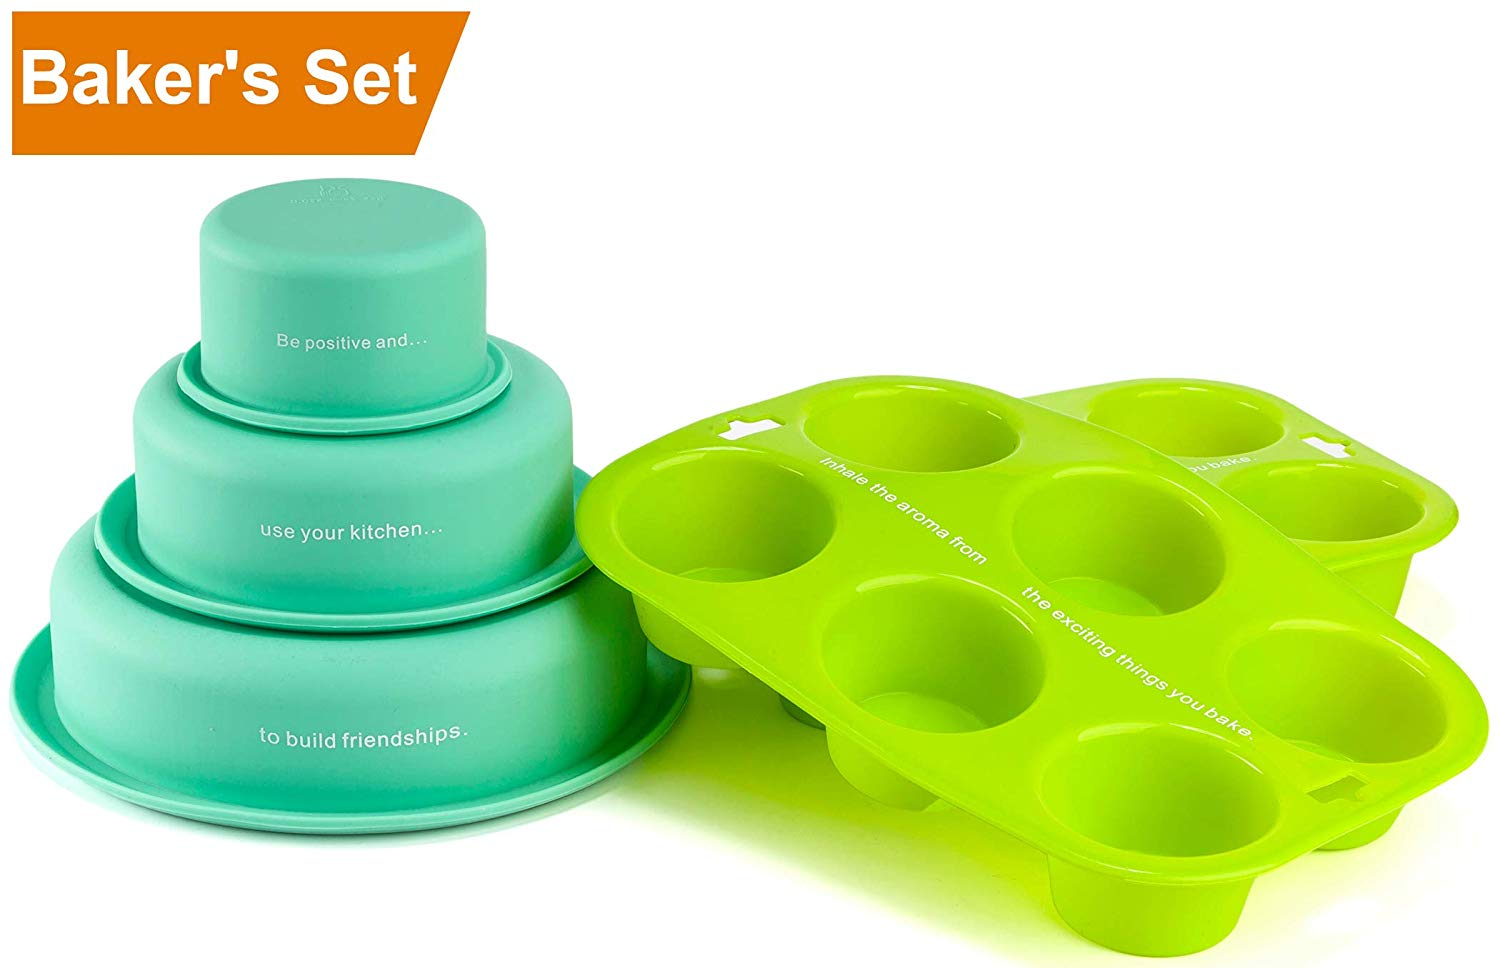 Silicone Round Cake Molds and Cup Cake Mold Set by LVKH (5 Piece Set)